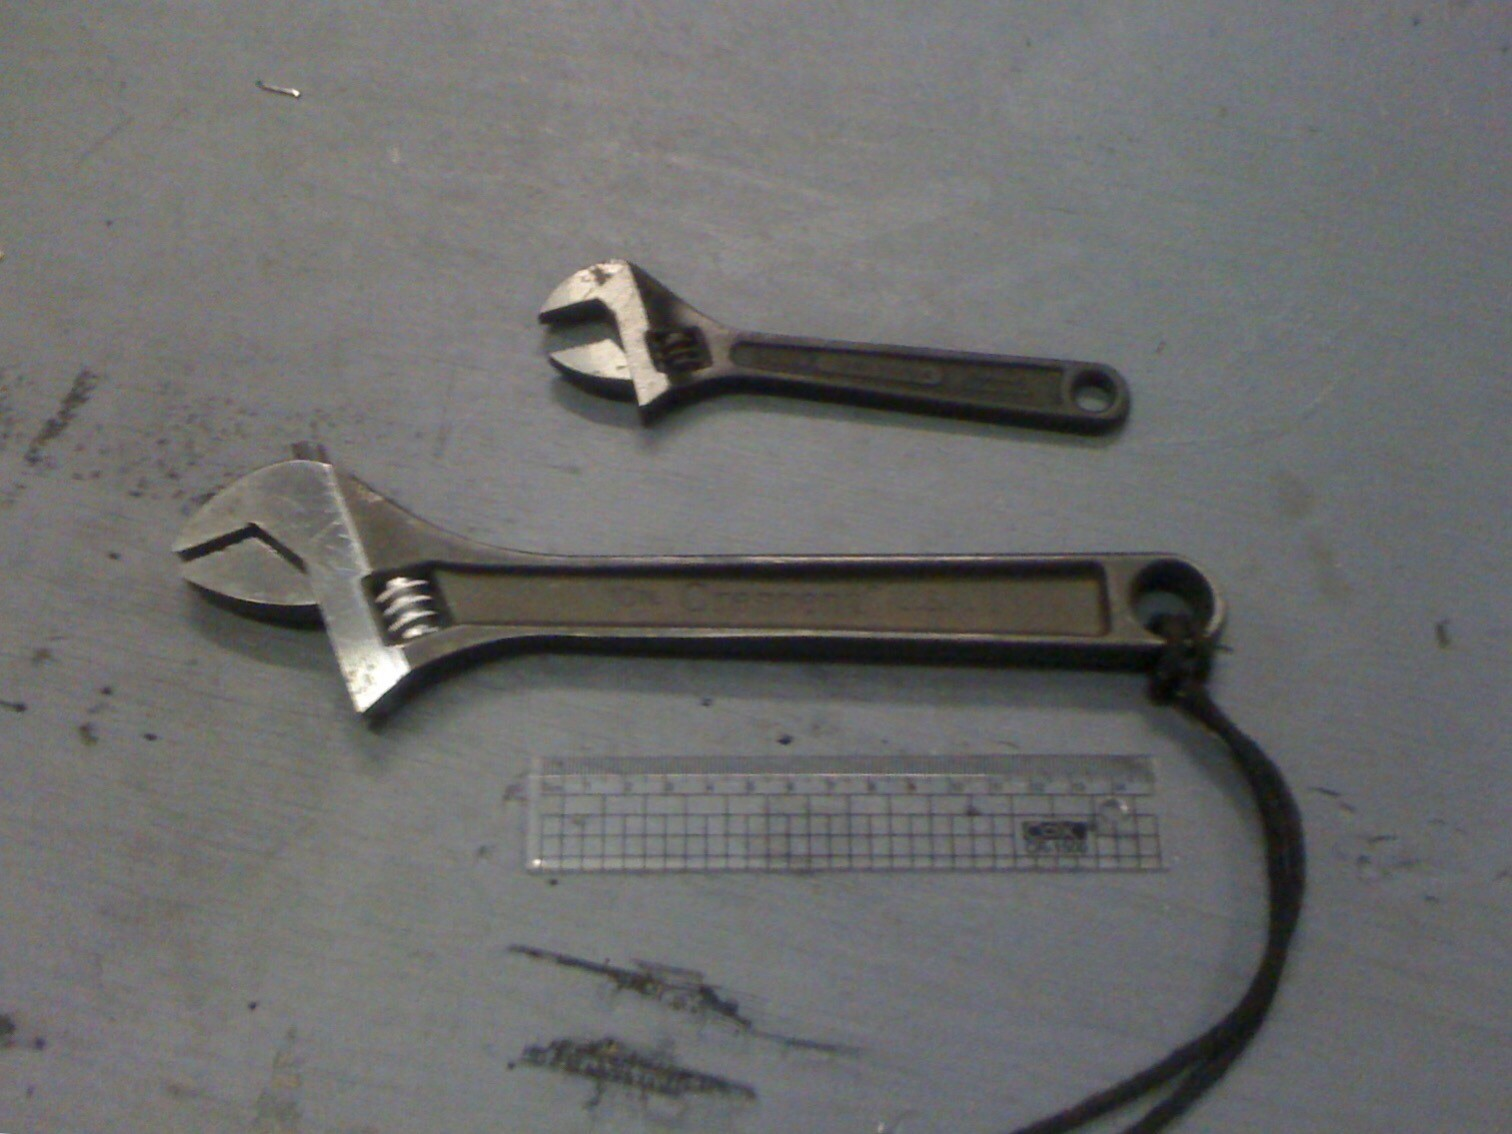 A six inch wrench above an eight inch wrench.